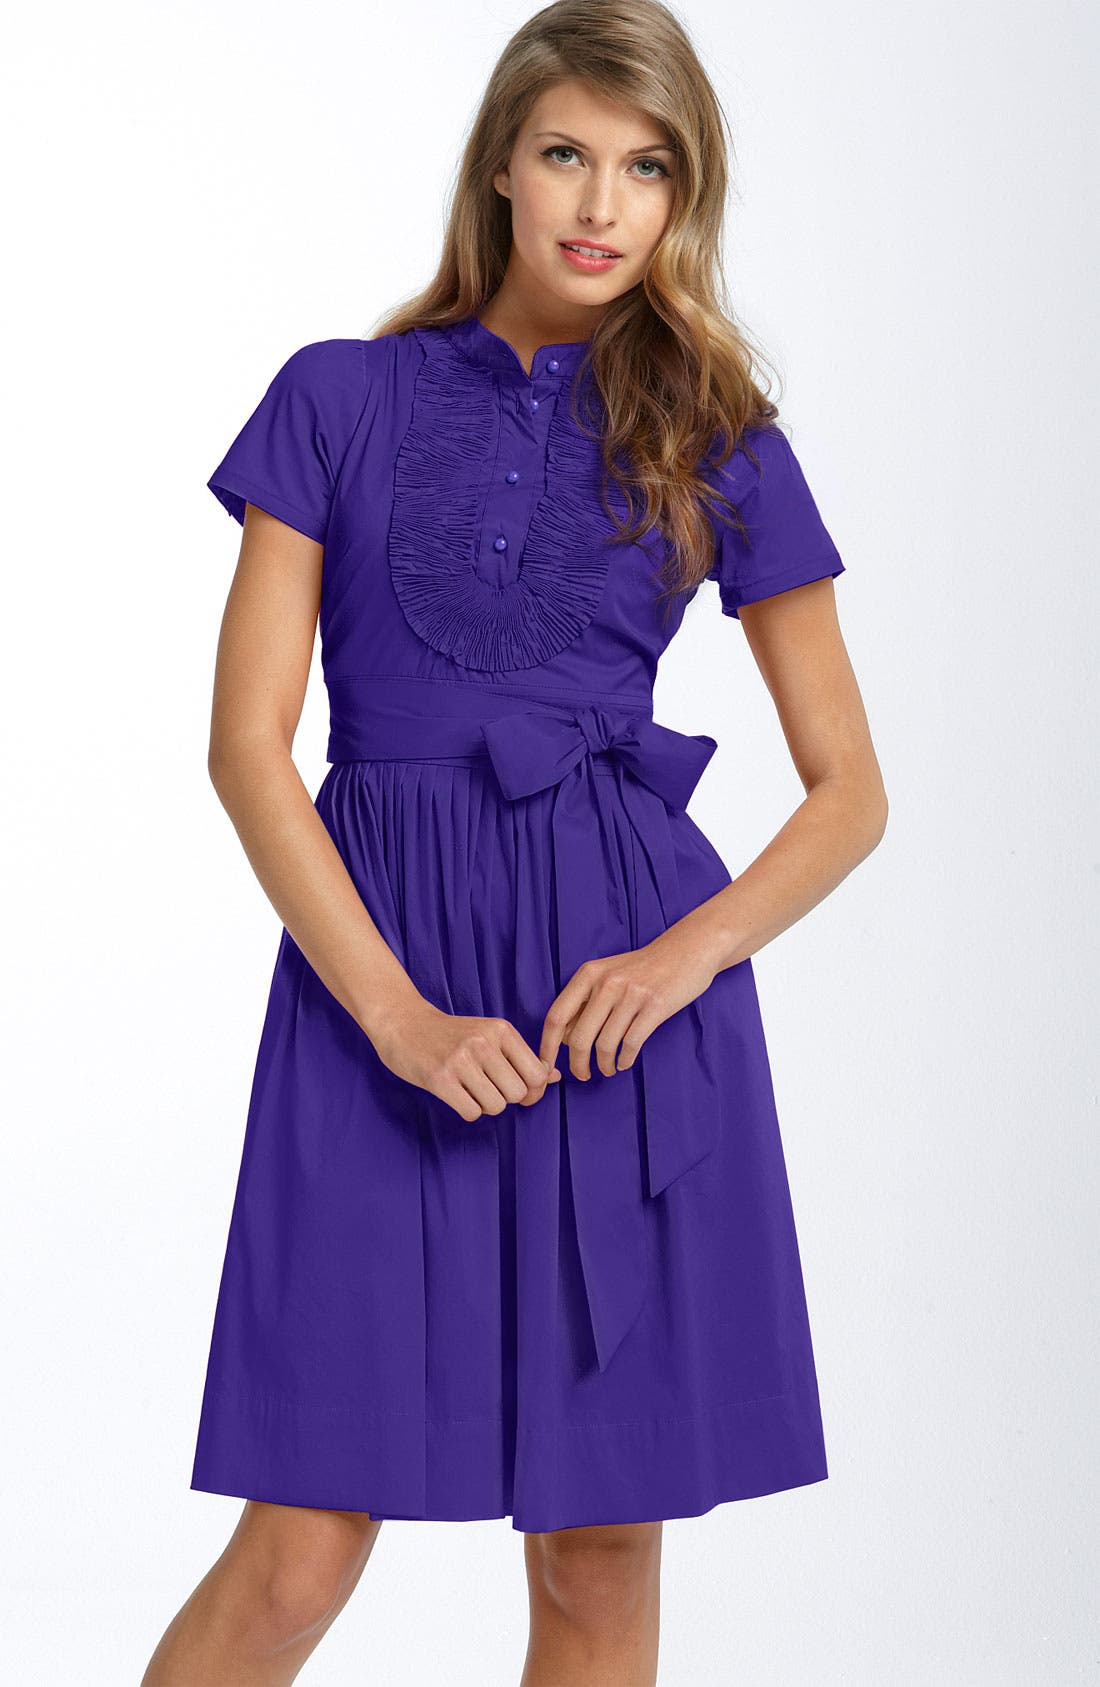 Alternate Image 1 Selected - Eliza J Ruffle Bib Stretch Cotton Shirtdress